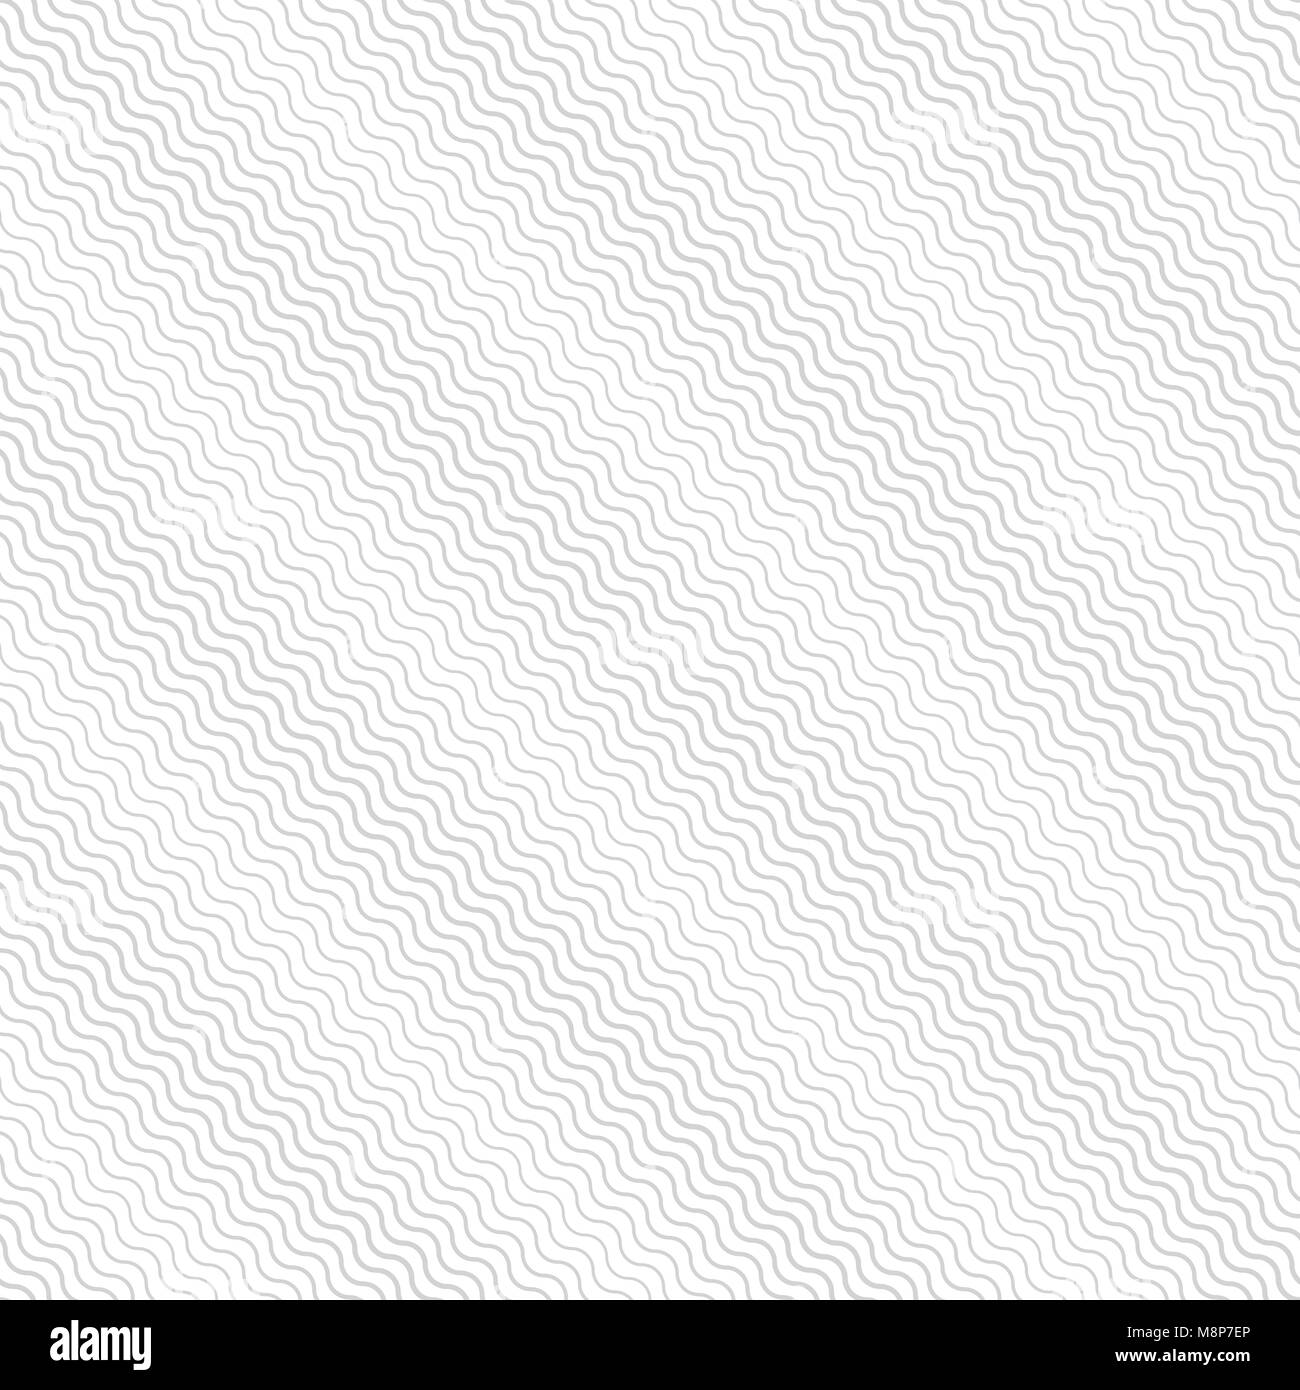 Halftone seamless pattern. Modern stylish geometric texture with repeating gentle pastel diagonal waves. Vector - Stock Vector